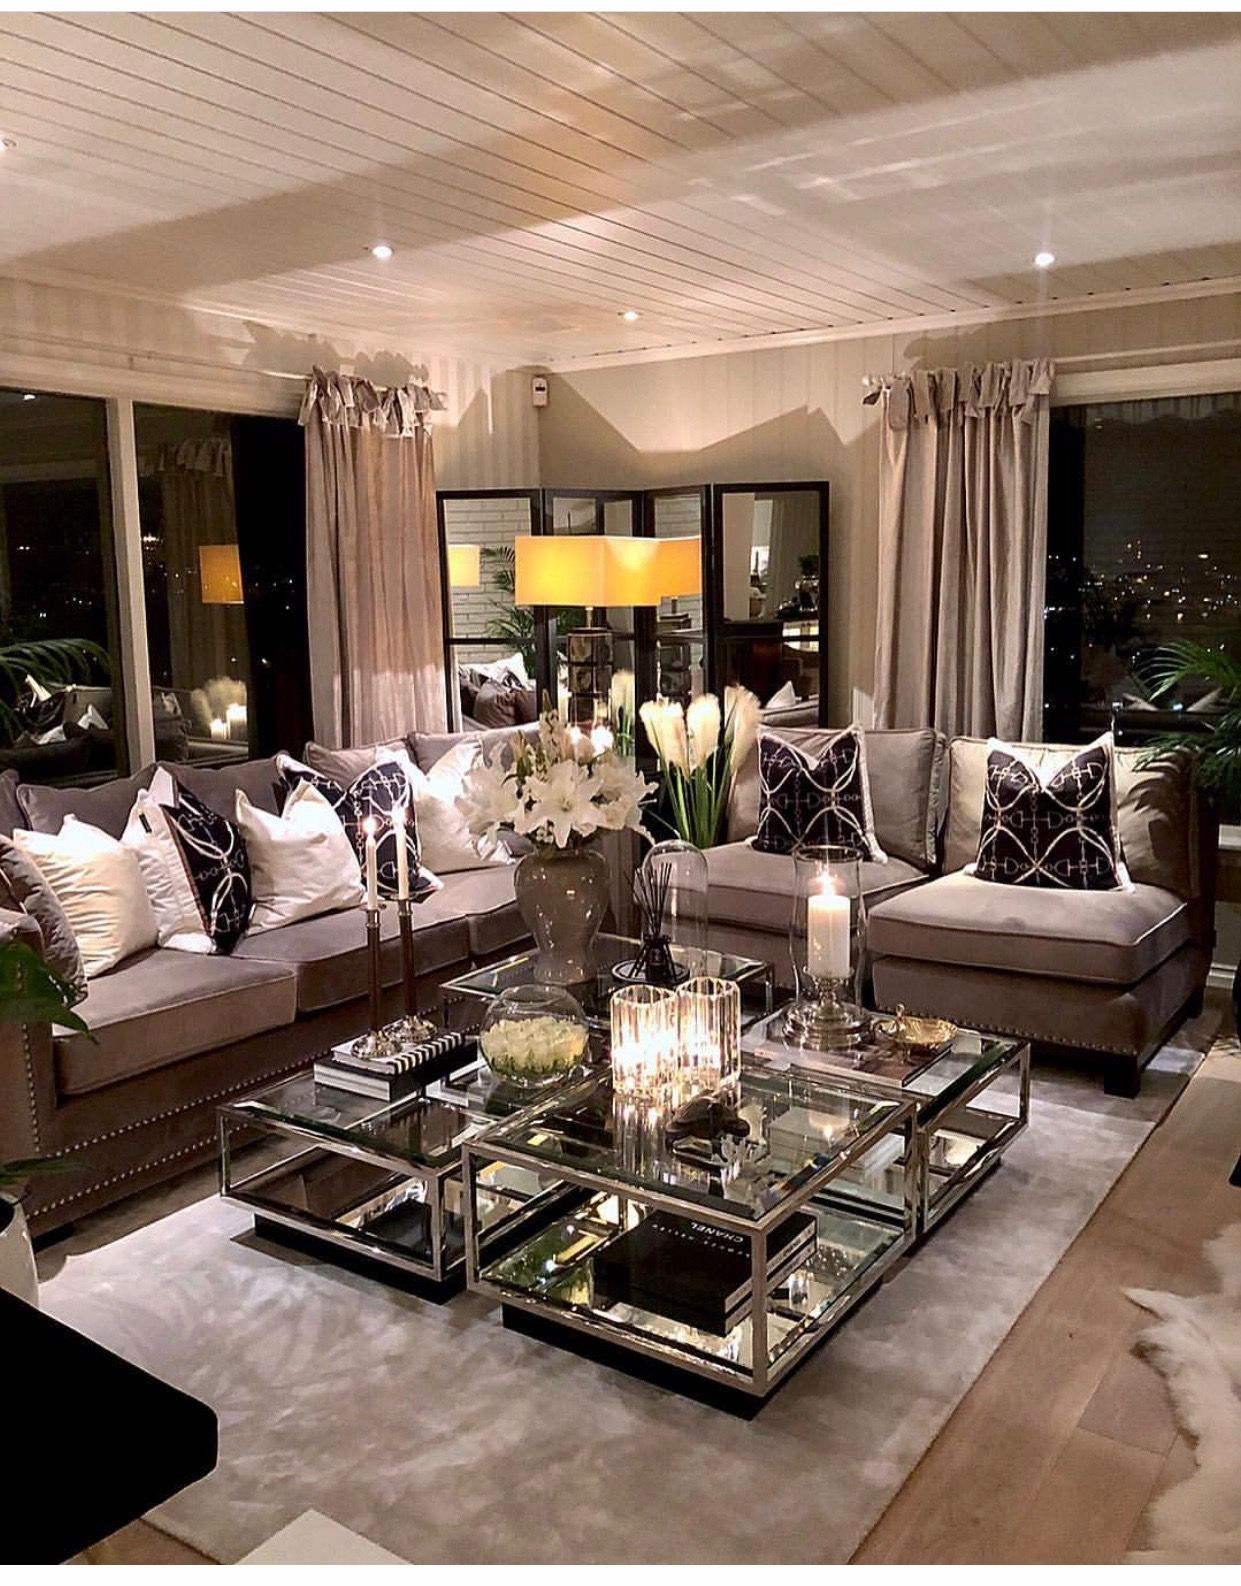 Pin by Xochilt Ruiz on Living room decor apartment in 2019 ...